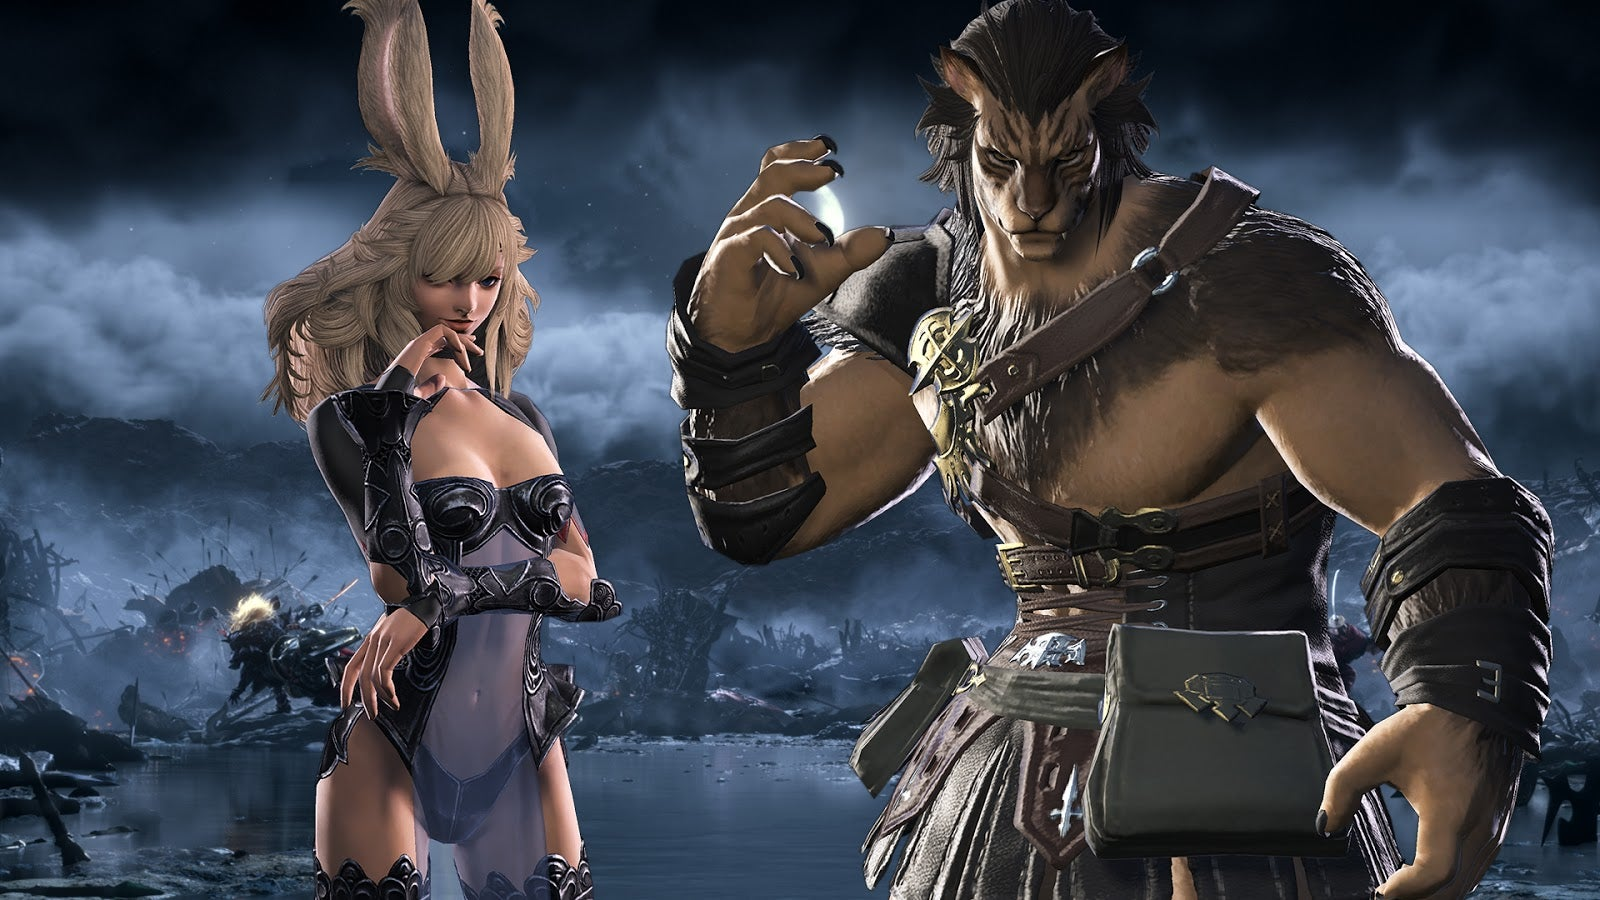 Final Fantasy XIV'sNewest Races Are Gender-Locked, And Players Are Not Happy